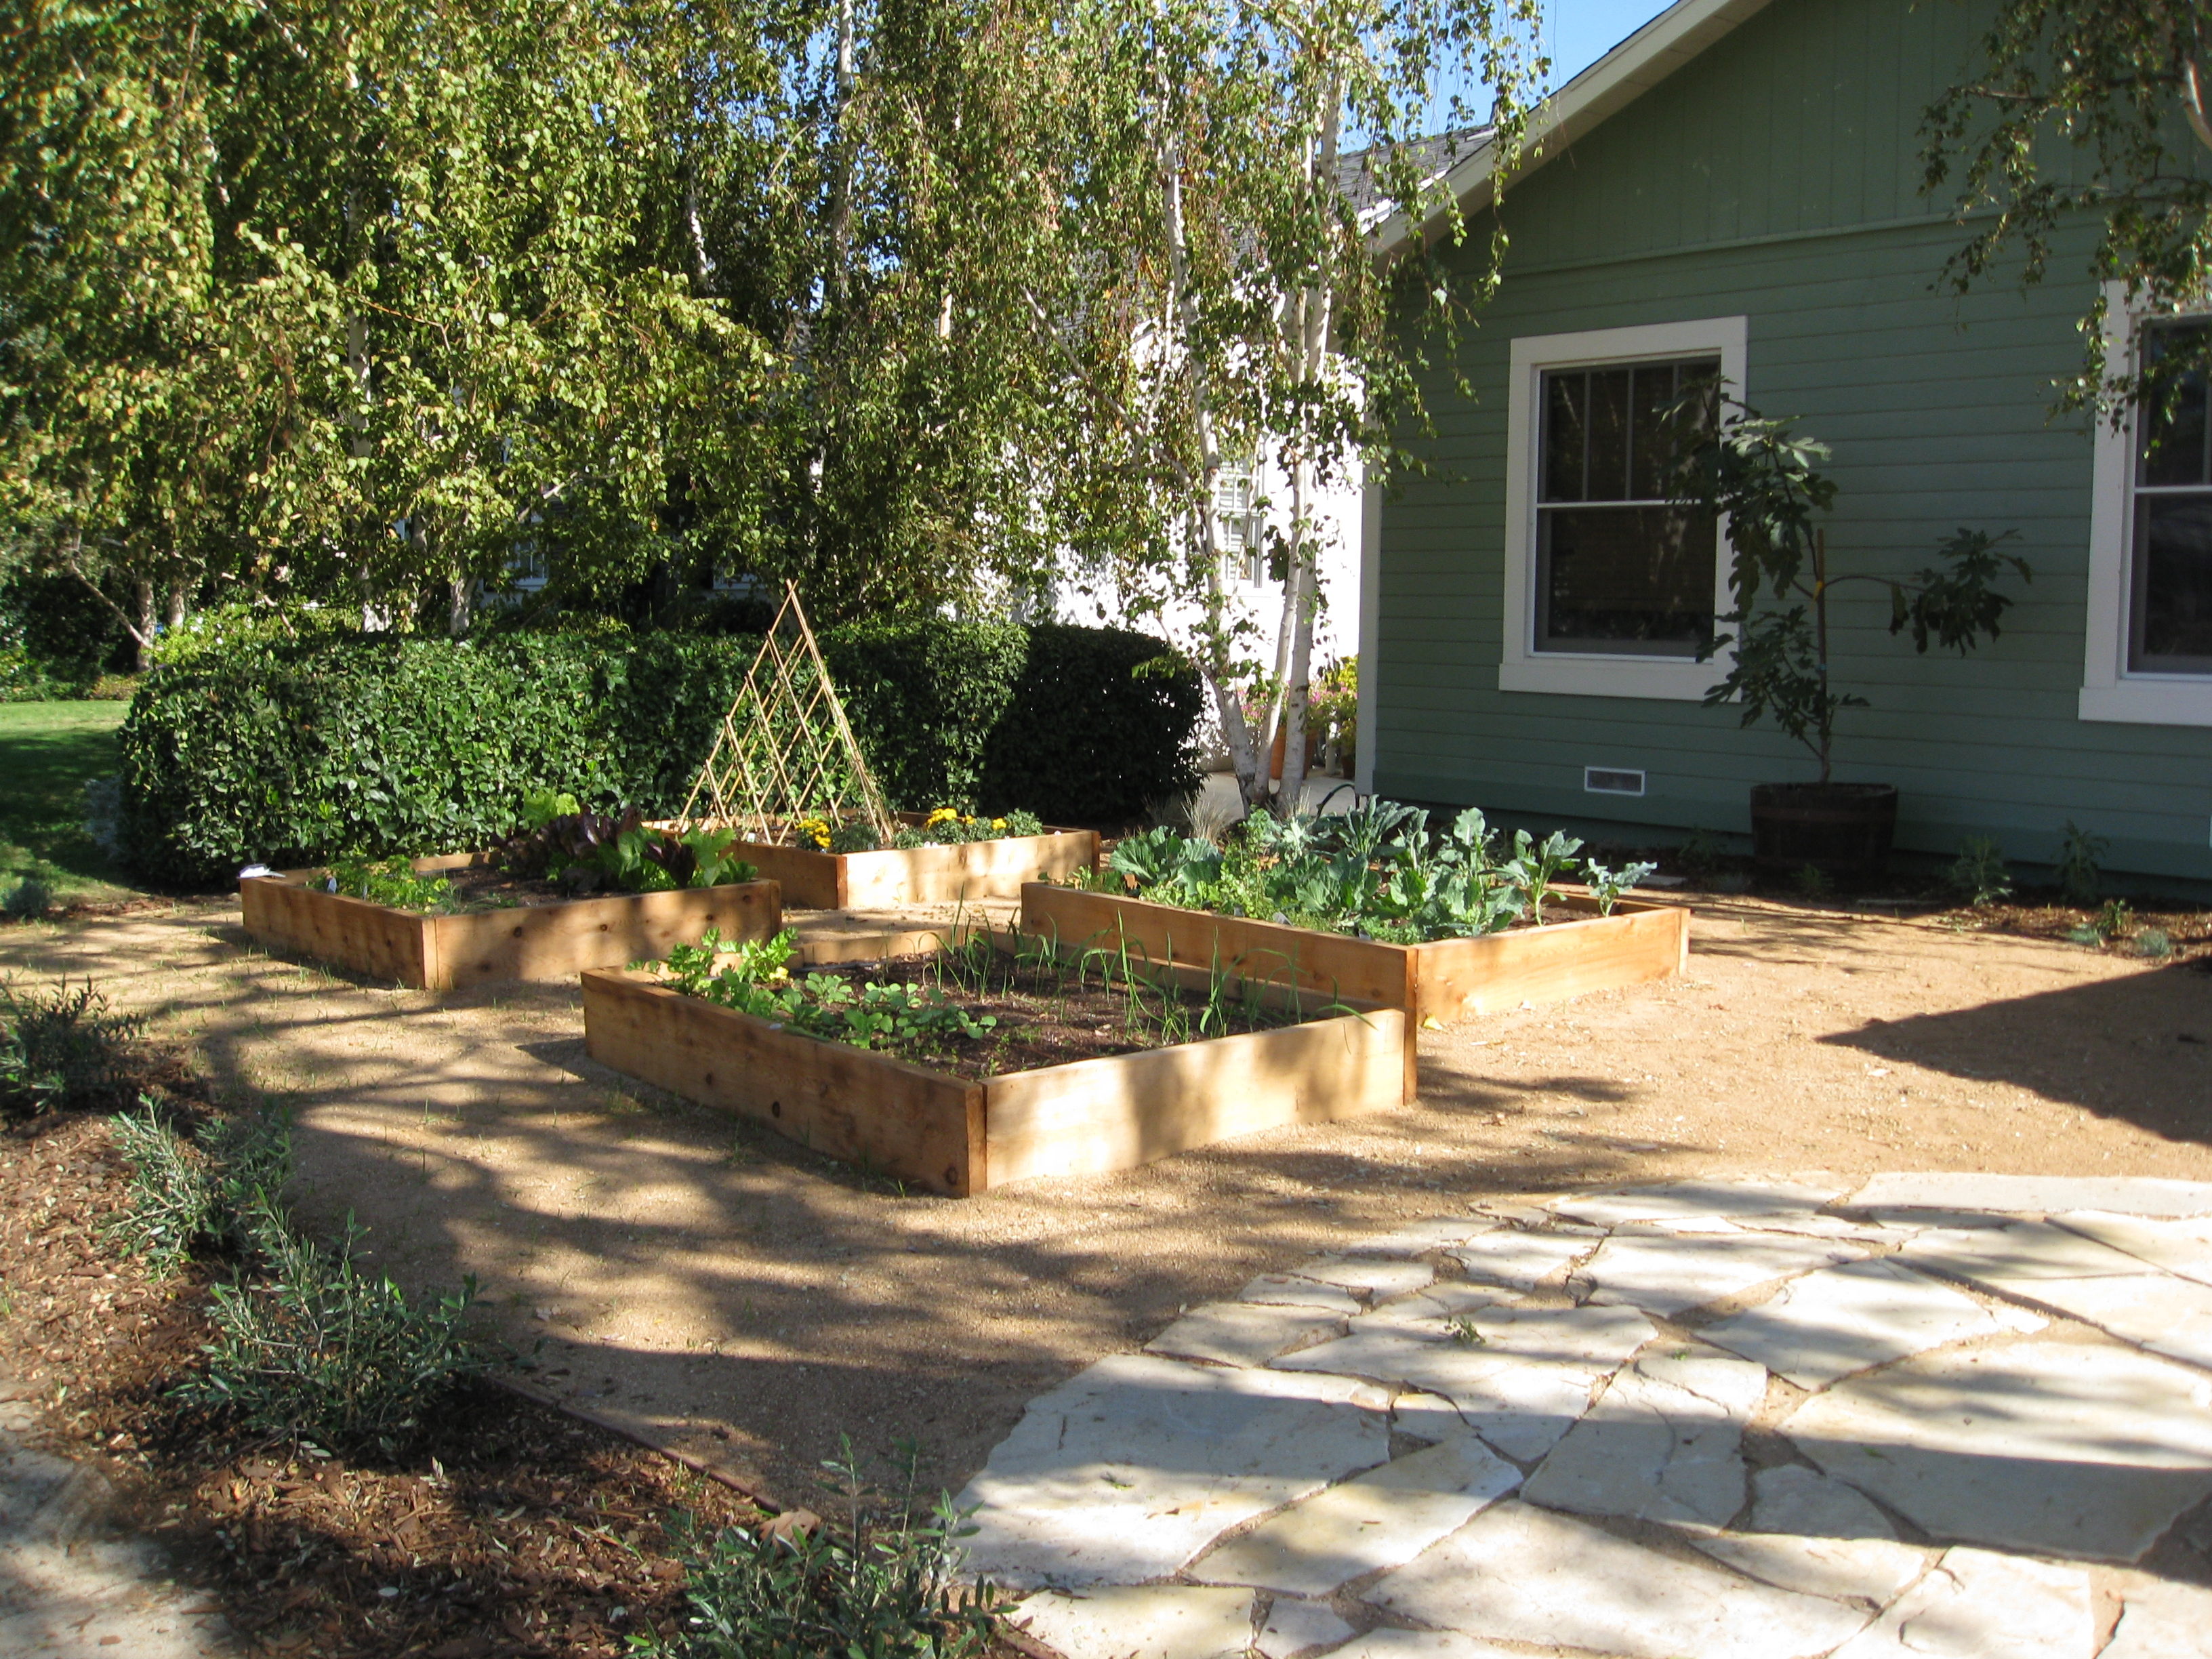 As plants grow in, the family can enjoy fresh lettuce, kale, and radishes from their new garden.